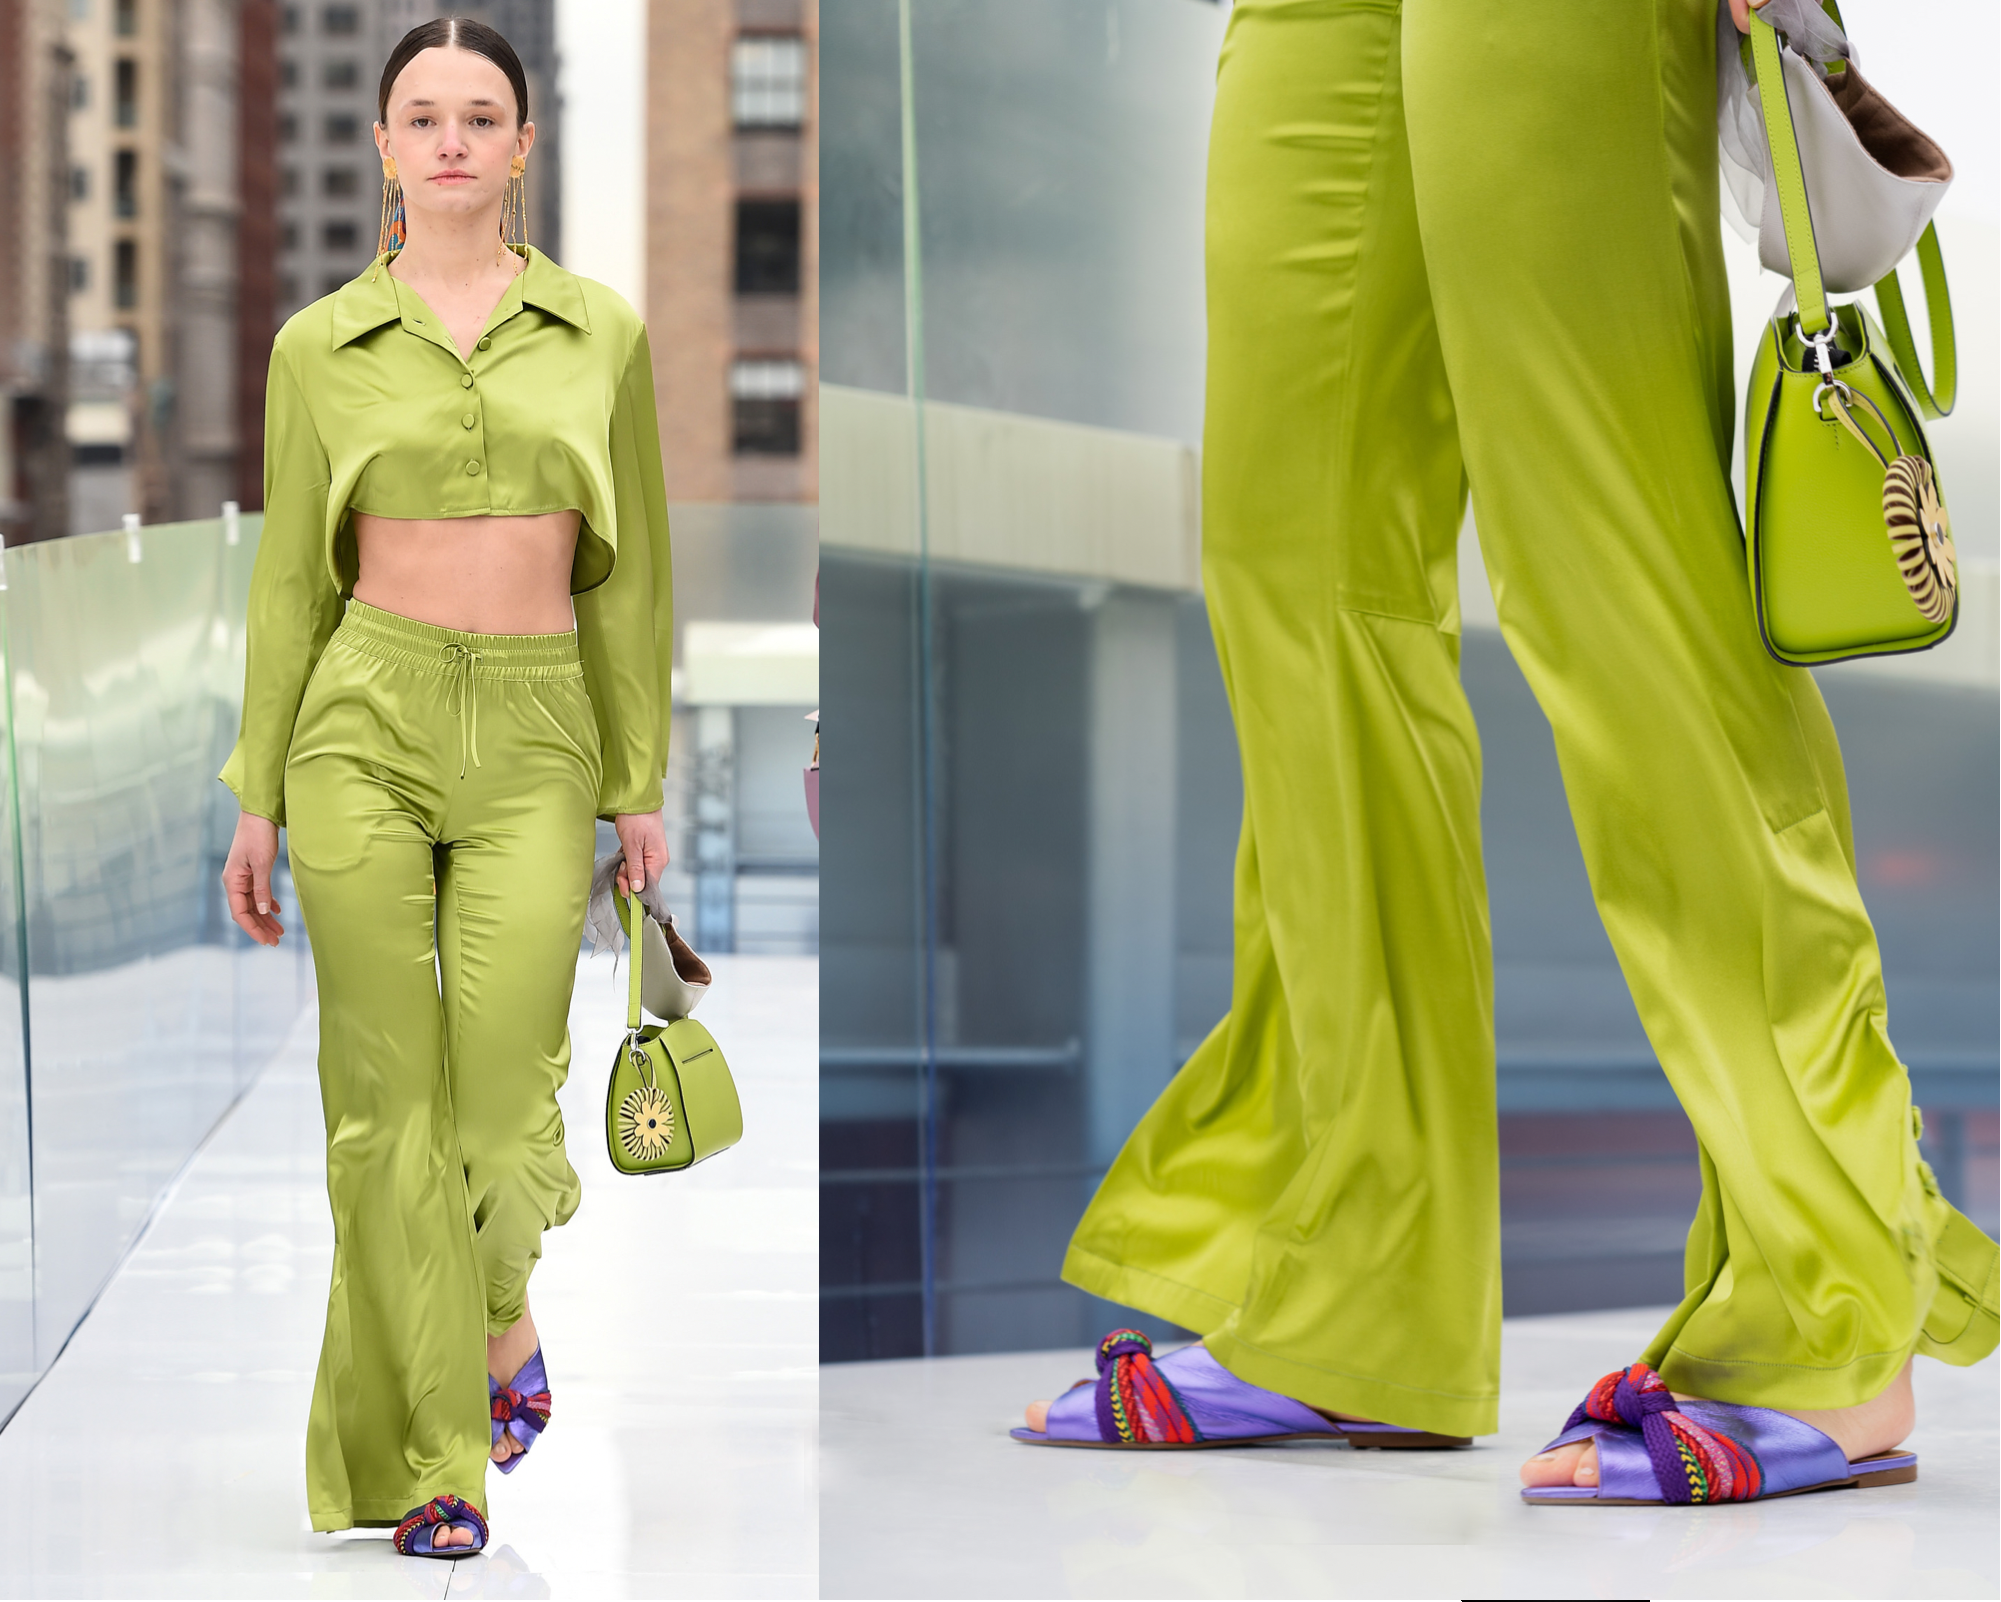 NYFW, New York Fashion Week, Shoes, NYFW Shoes, Models, sandals, trend, Handmade shoes, handcrafted